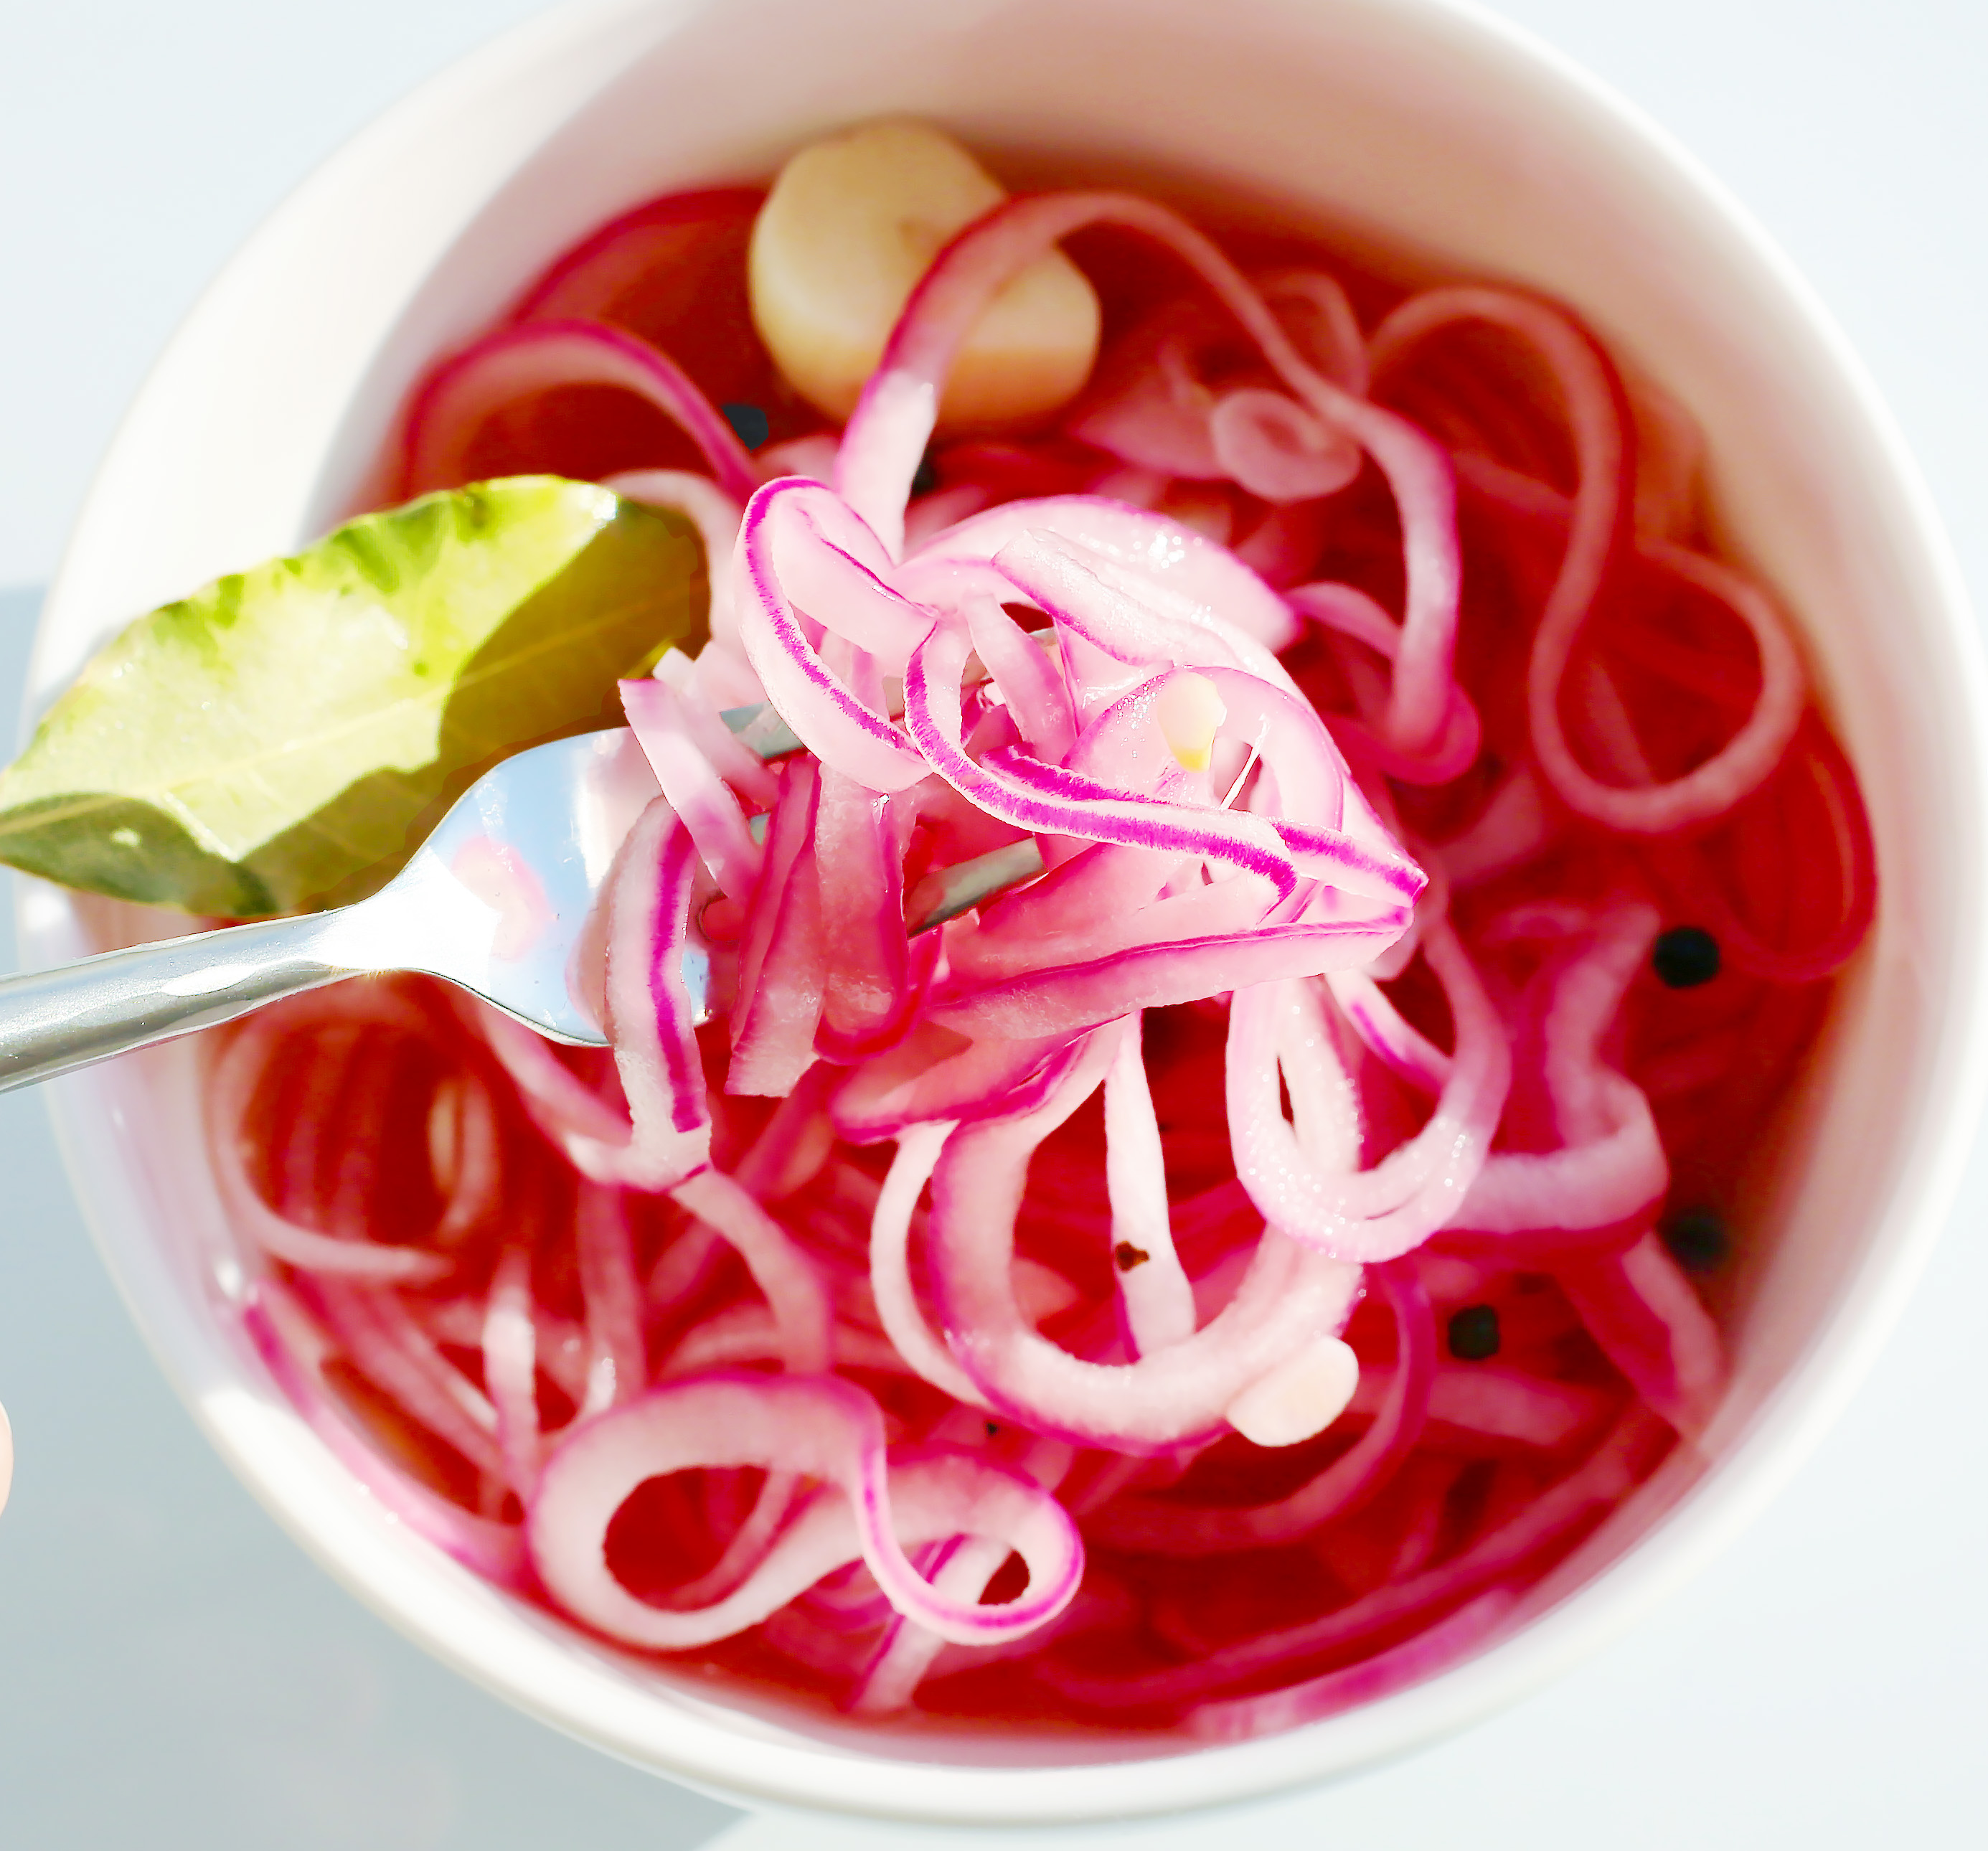 pickled-red-onion-bay-garlic-crop